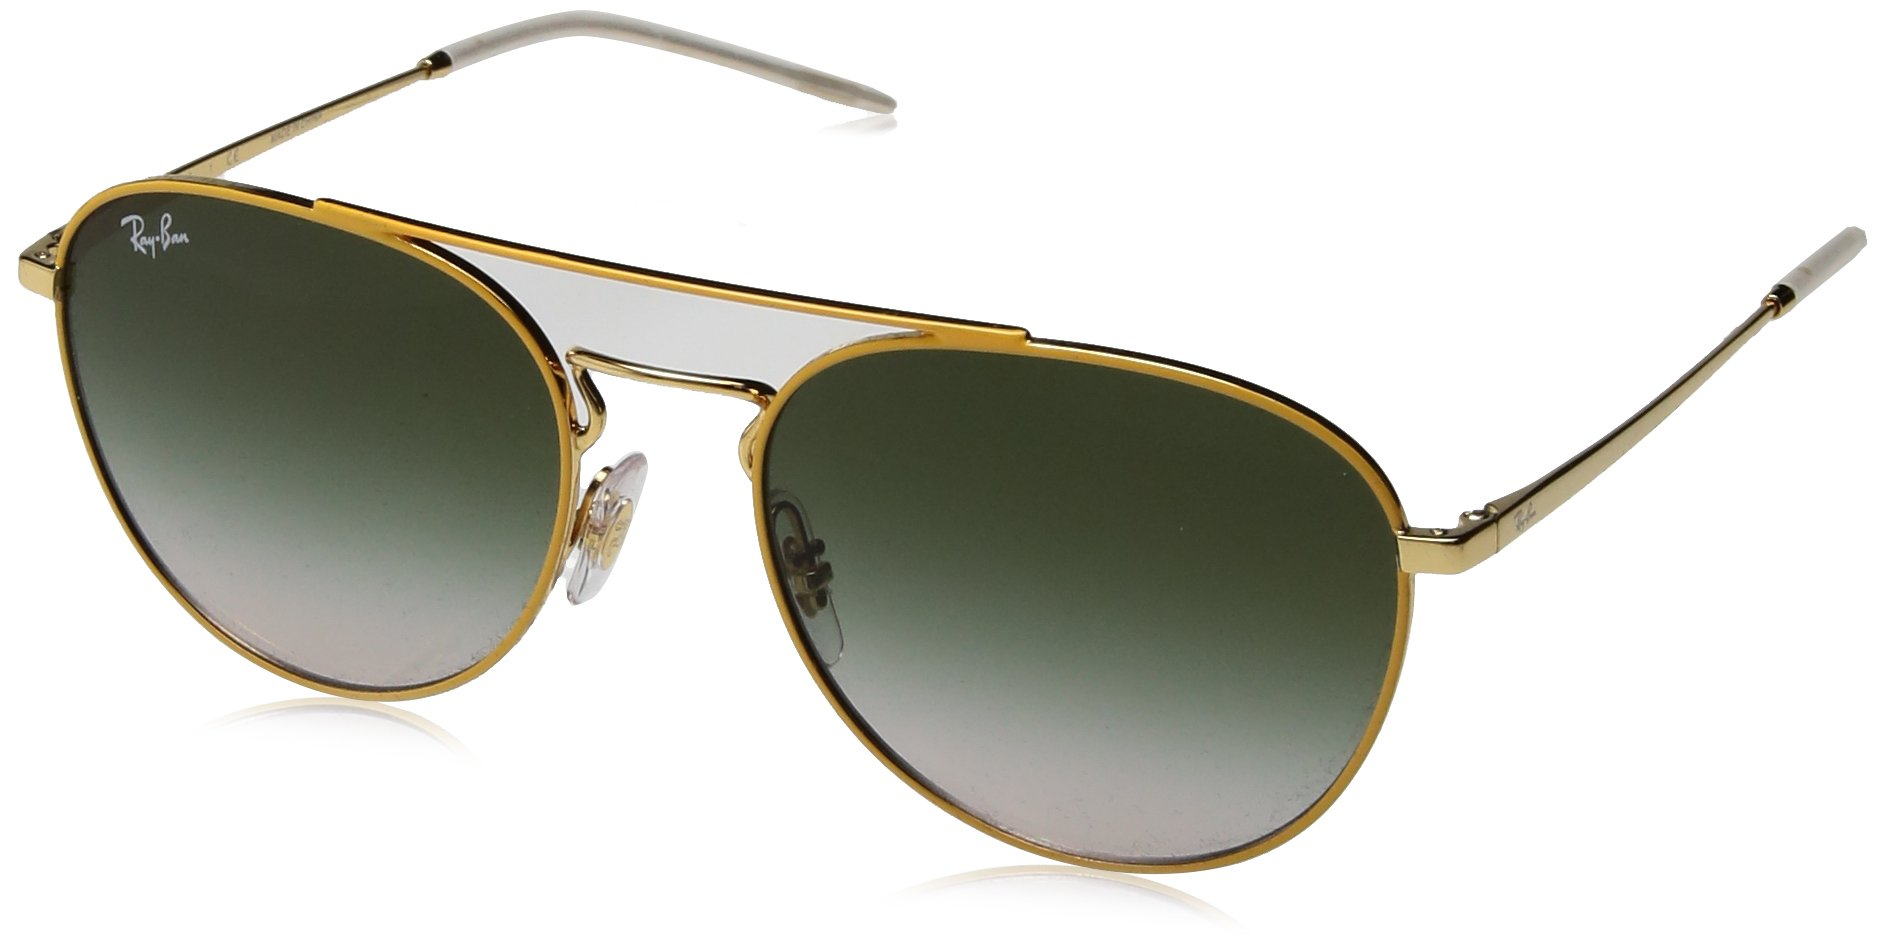 Ray-Ban Women's Metal Woman Square Sunglasses, Gold Top on Yellow, 55 mm